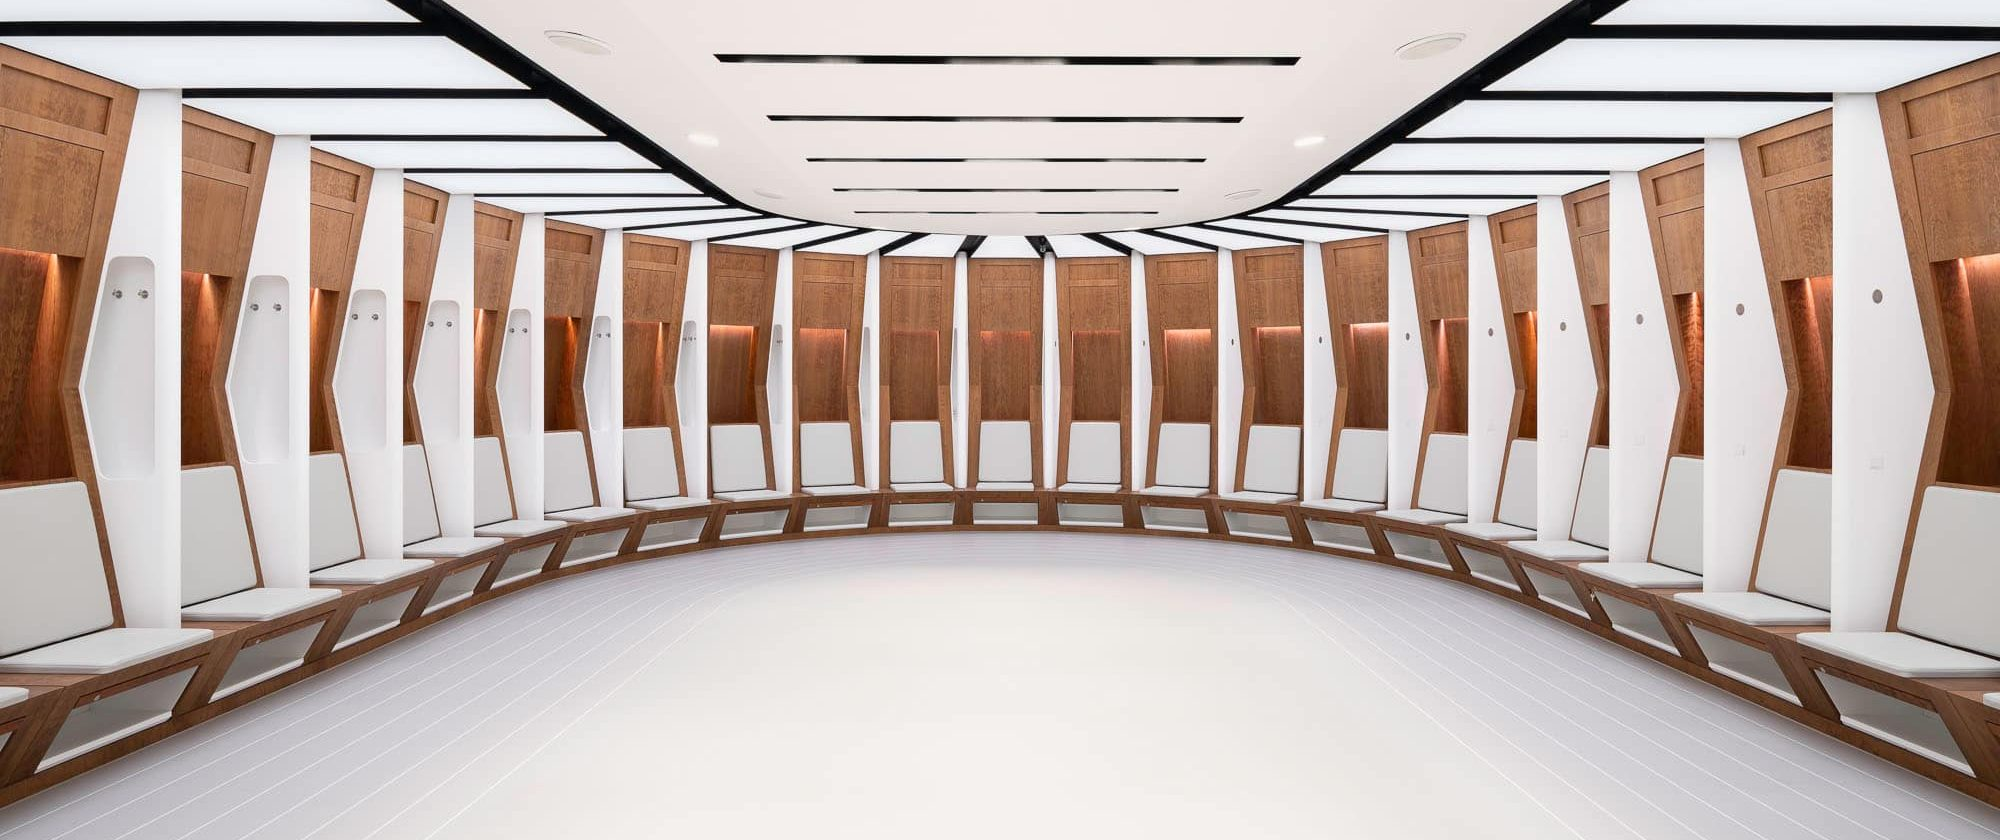 https://wooarchitects.com/wp-content/uploads/2020/07/Wembley-Changing-Rooms-photo-by-Tom-Bird-4-web-e1594738961665.jpg